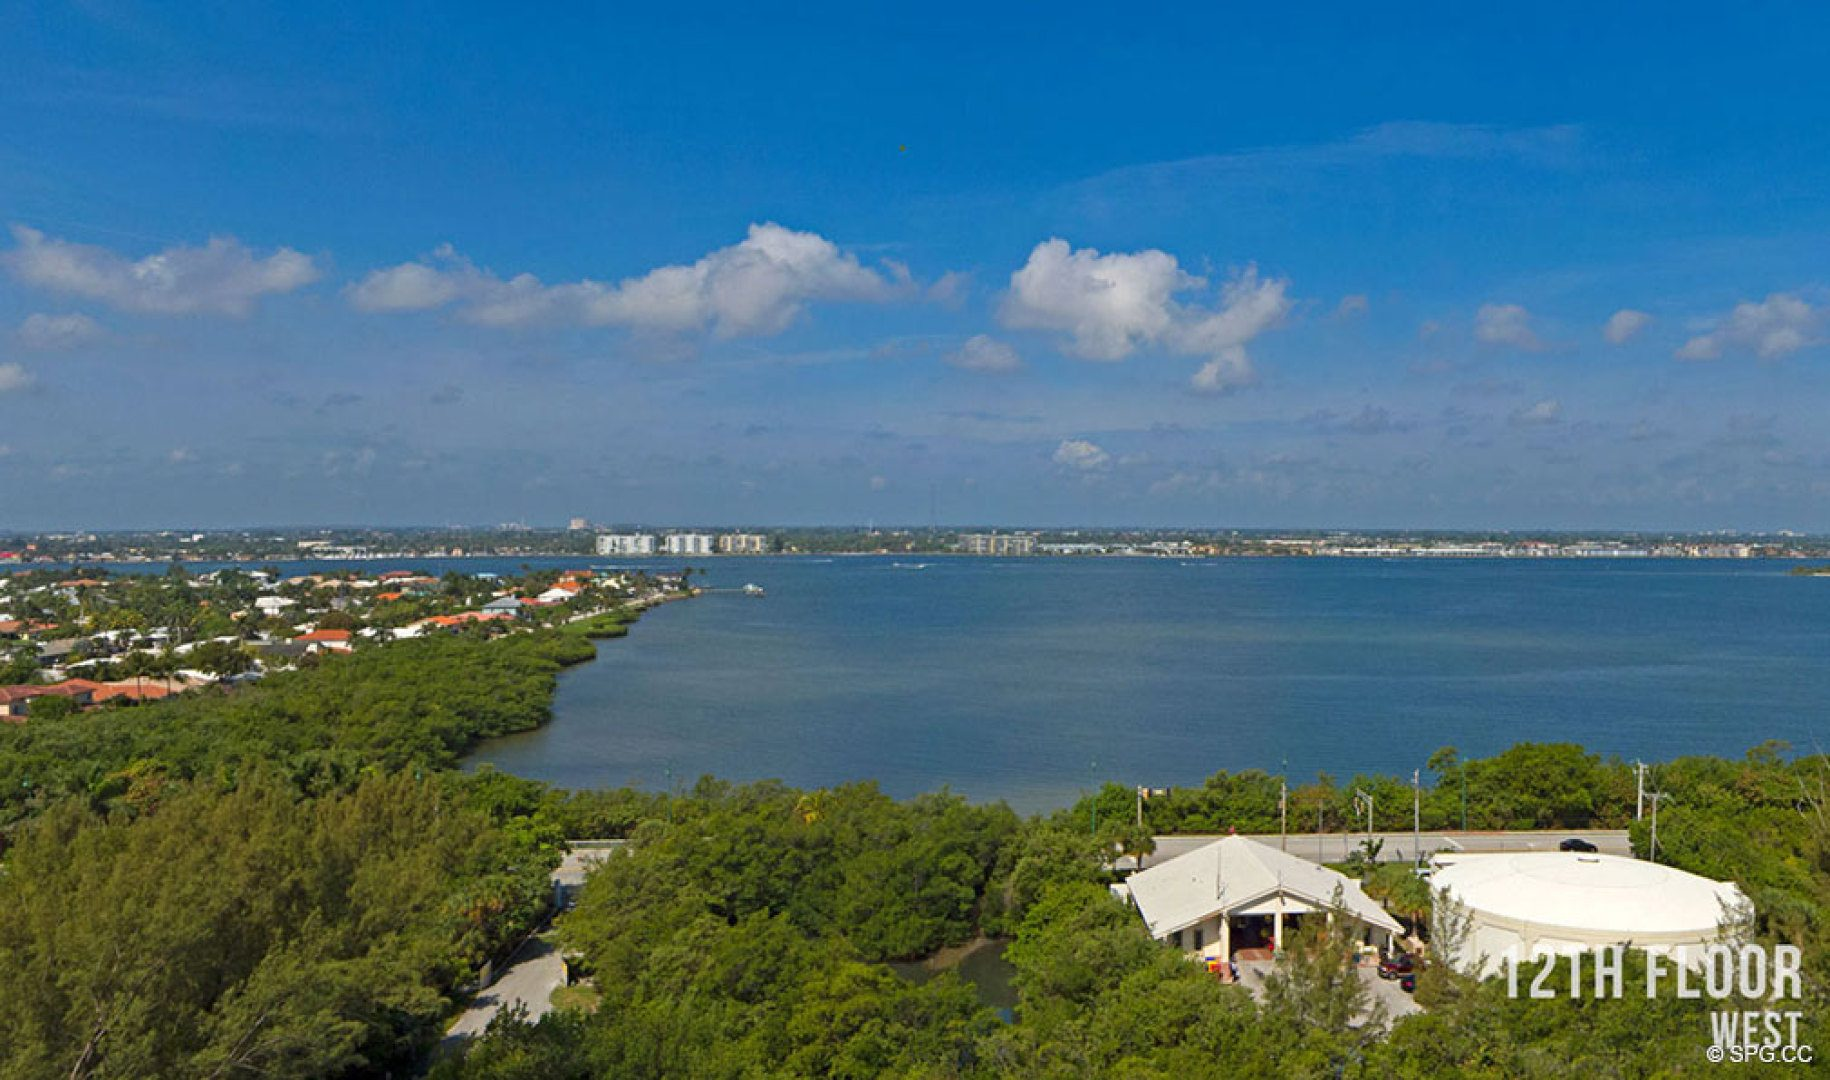 Twelfth Floor Western Views from 5000 North Ocean, Luxury Oceanfront Condos in Riviera Beach